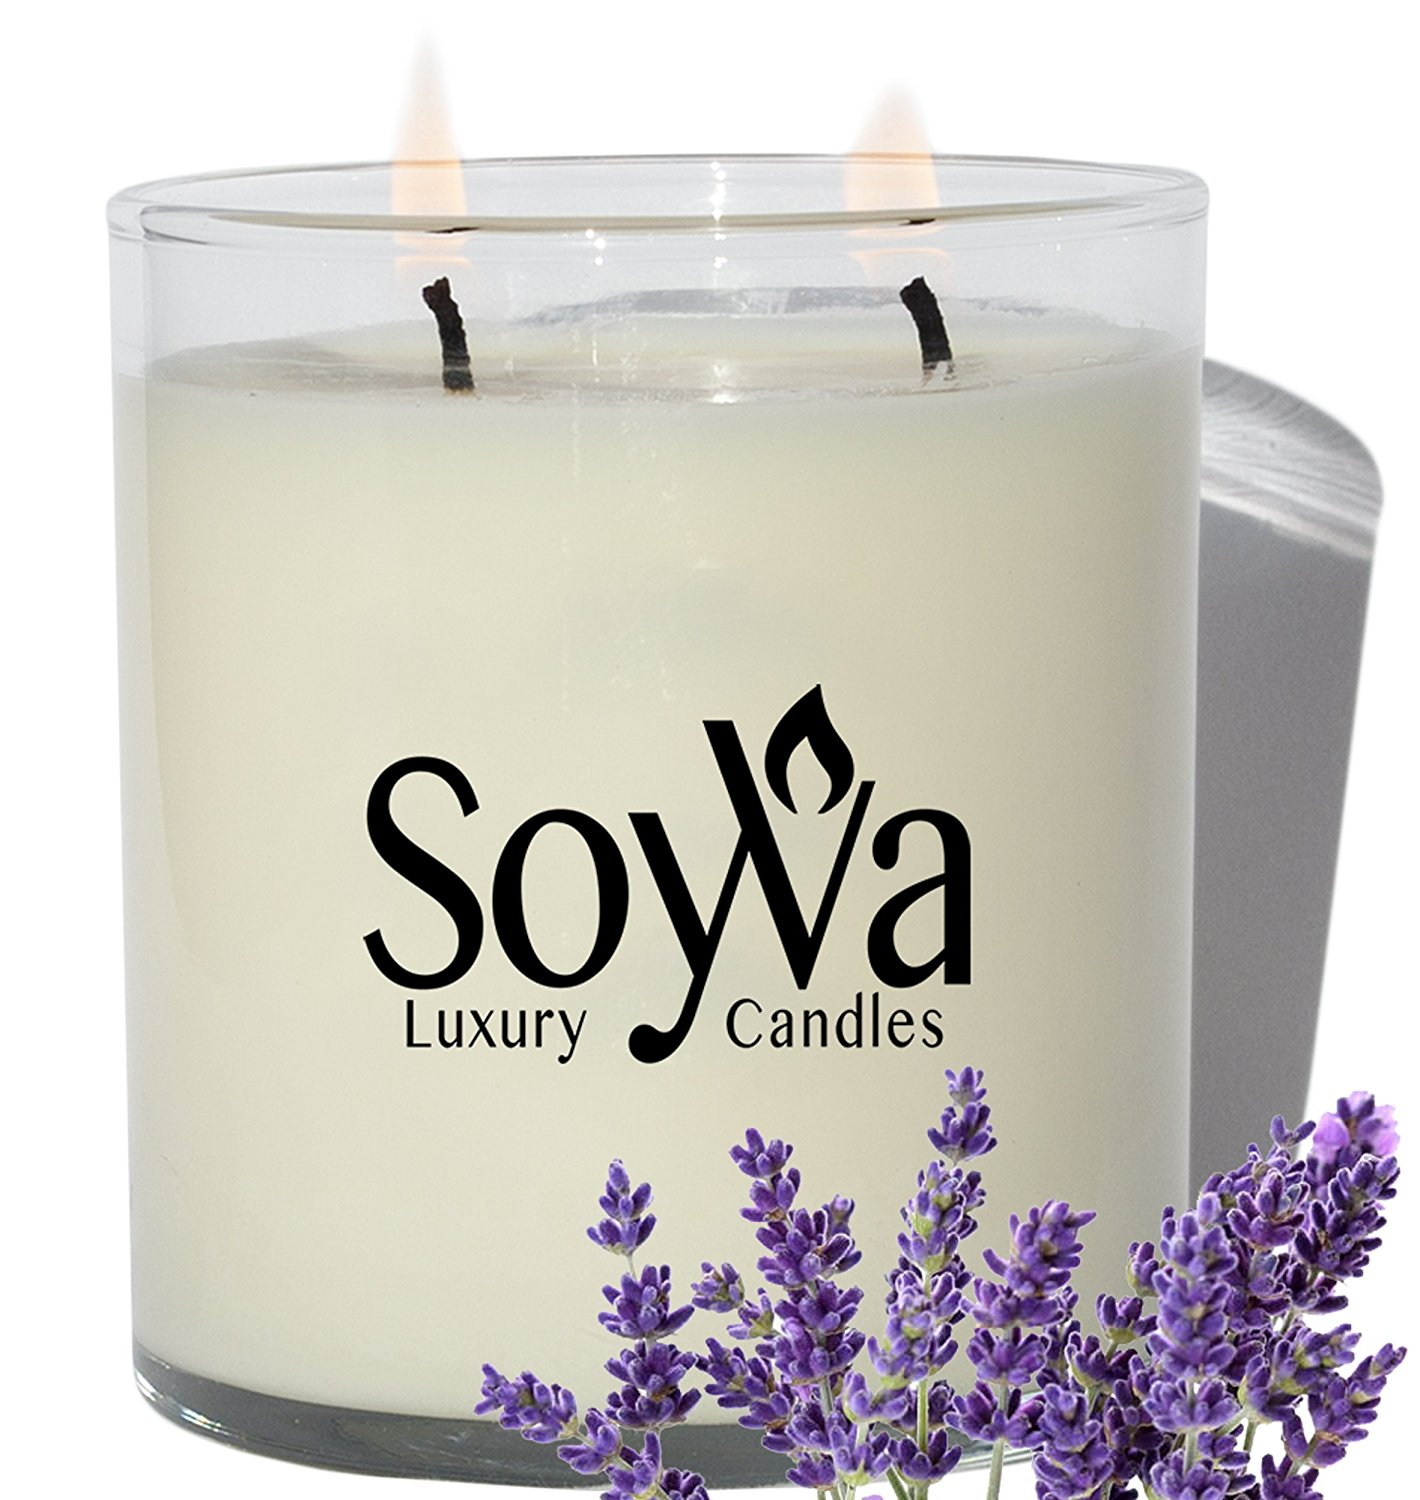 SoyVa Lavender Scented Natural Soy Wax Handmade Aromatherapy Candle, 9 oz.